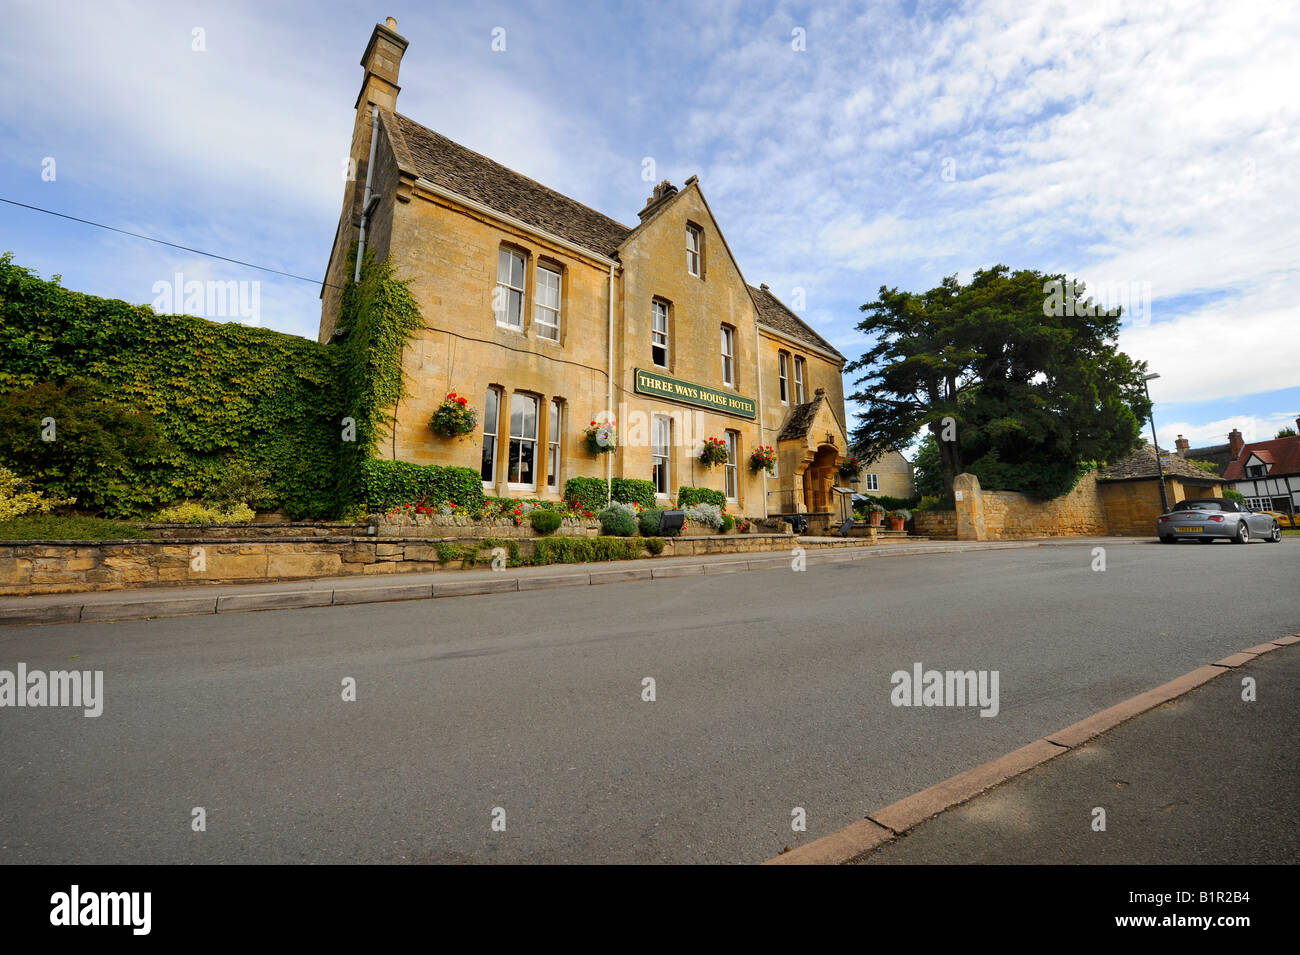 The Three Ways House Hotel in Mickleton near Chipping Campden home of the Pudding Club. Picture by Jim Holden. - Stock Image